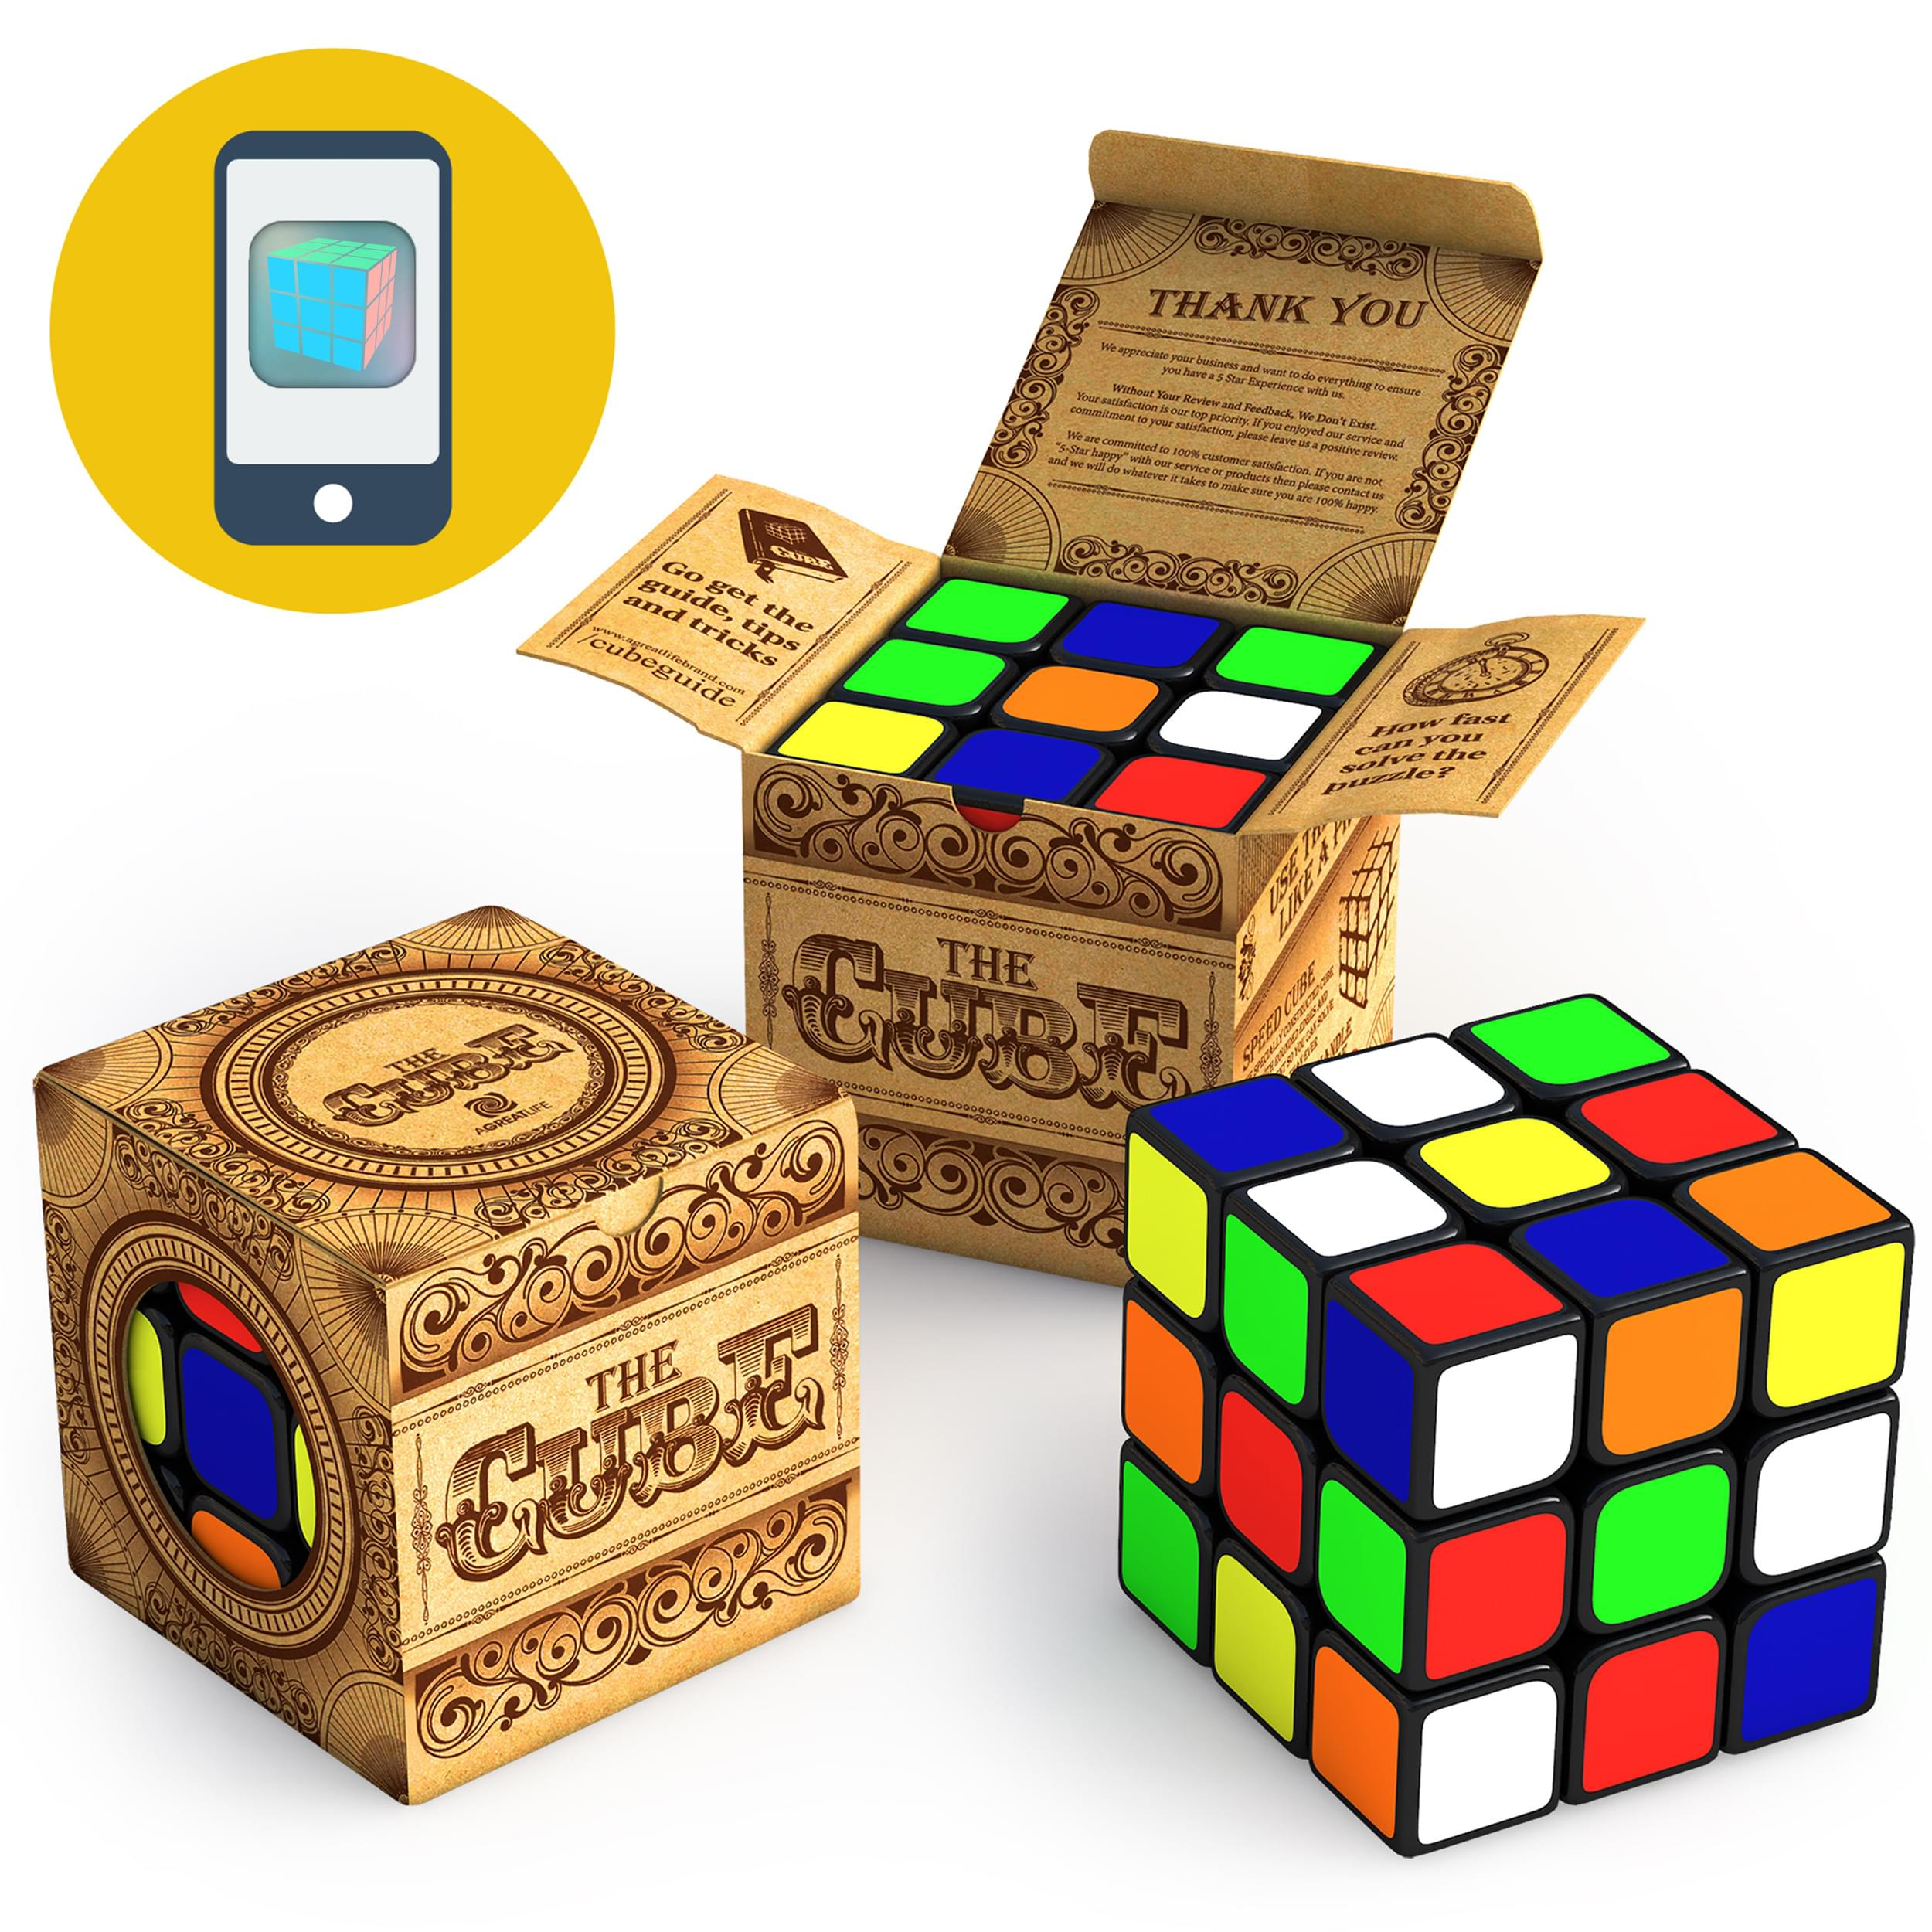 aGreatLife 3x3x3 speed cube